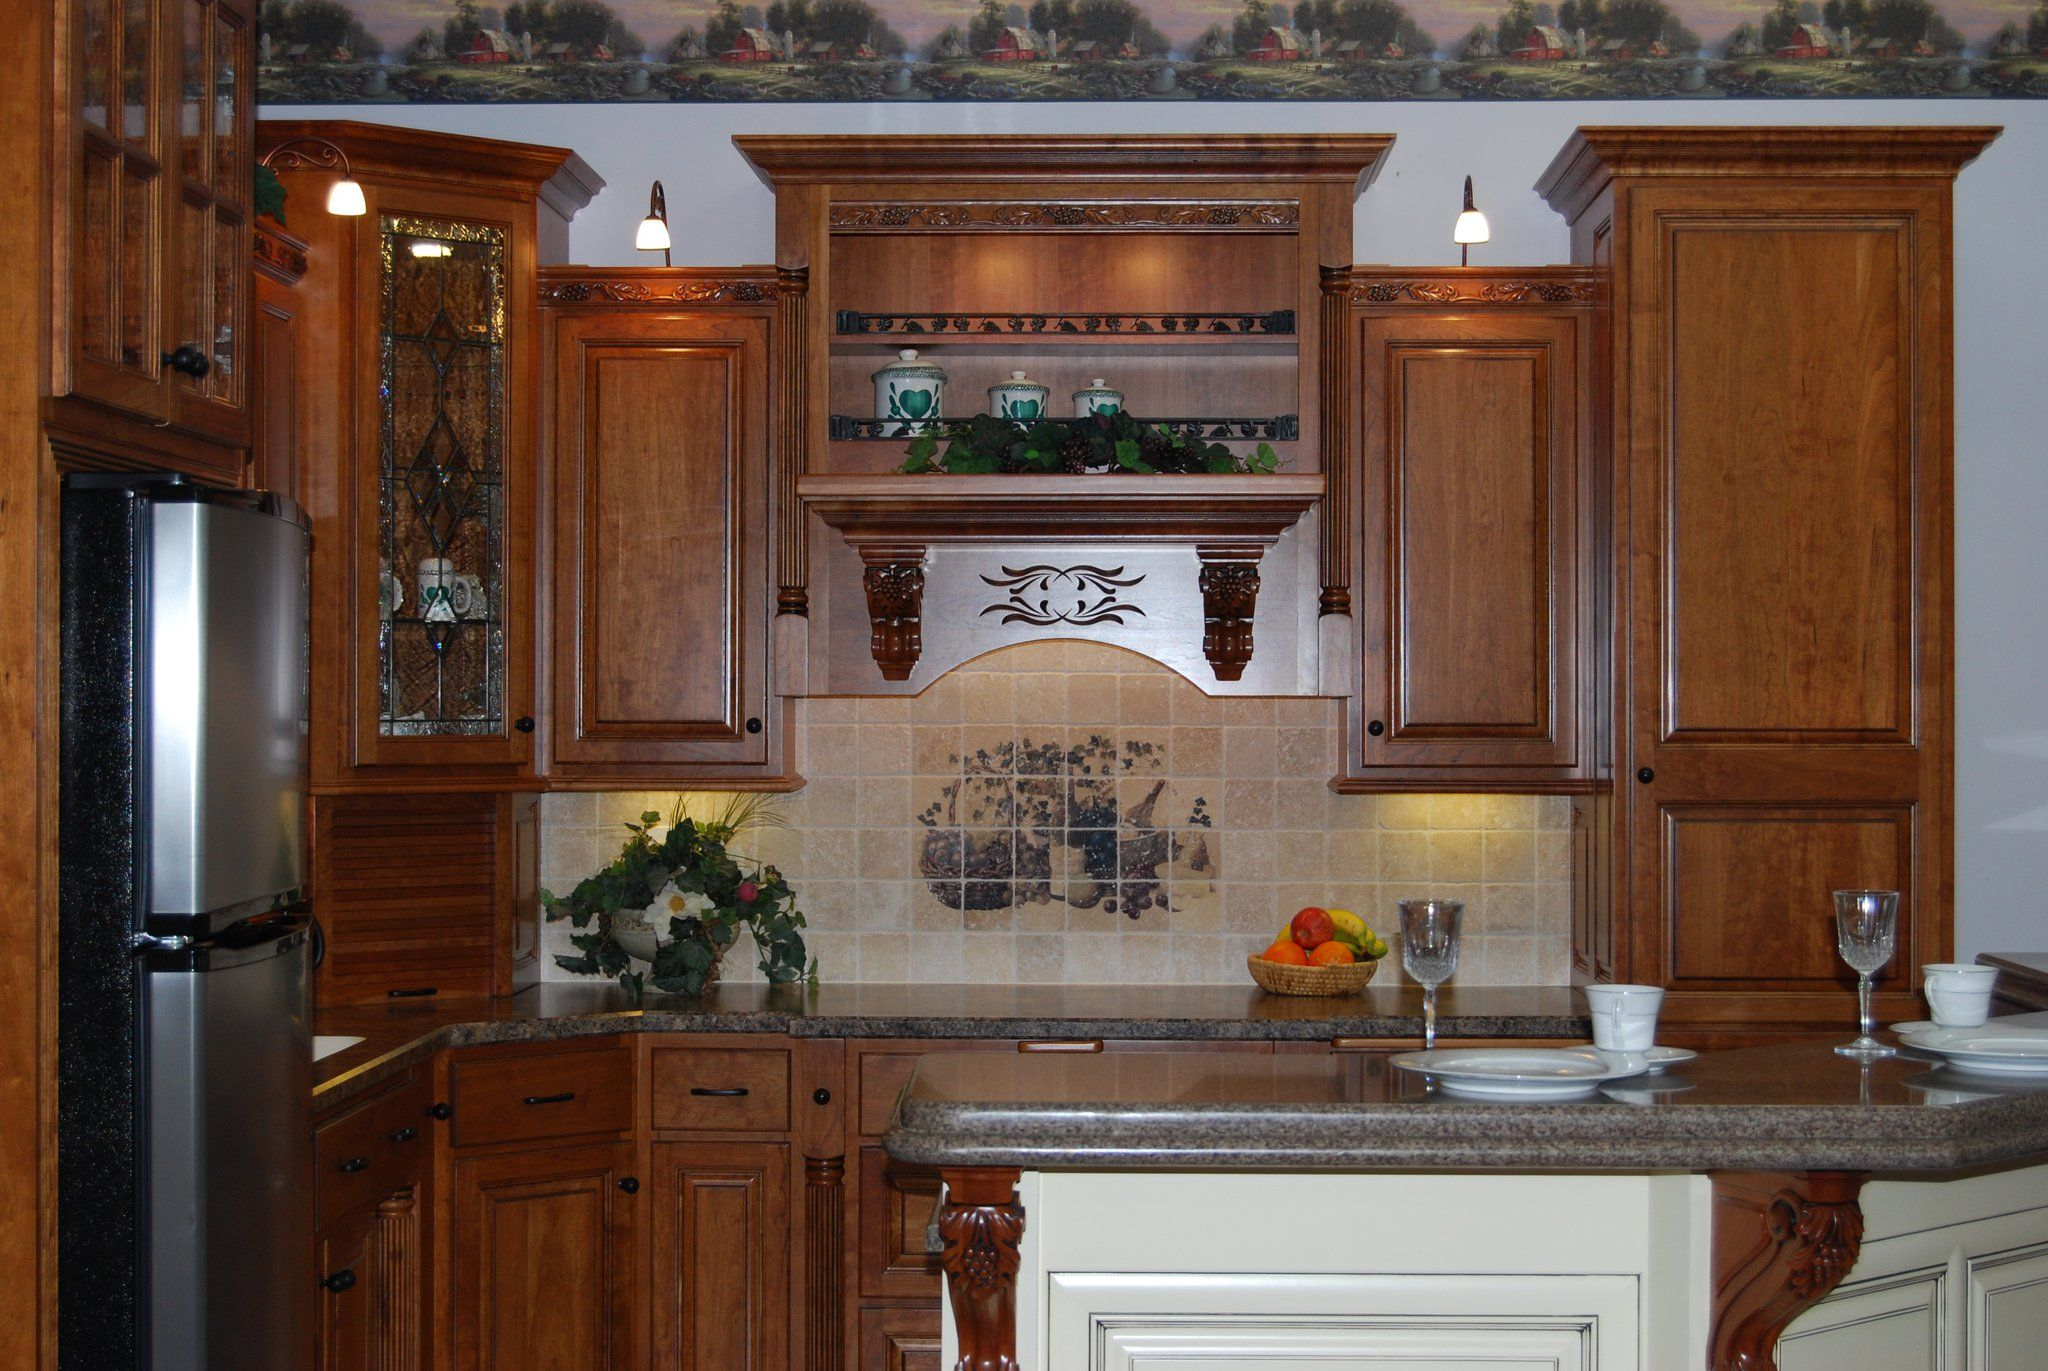 Beautiful Amish Made Cabinetry From Washington Indiana Cabinetry Home Home Decor